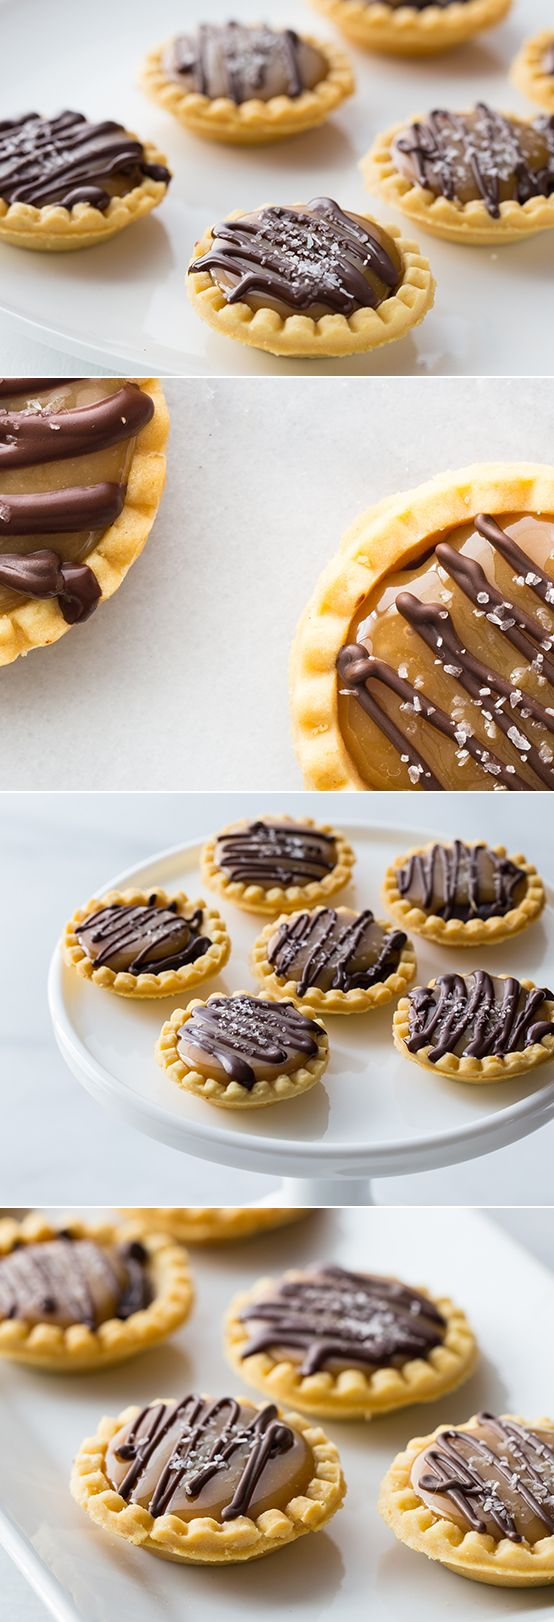 A mouthwatering mix of salty and sweet, these Mini Salted Caramel Chocolate Pies are perfect for holiday gatherings.